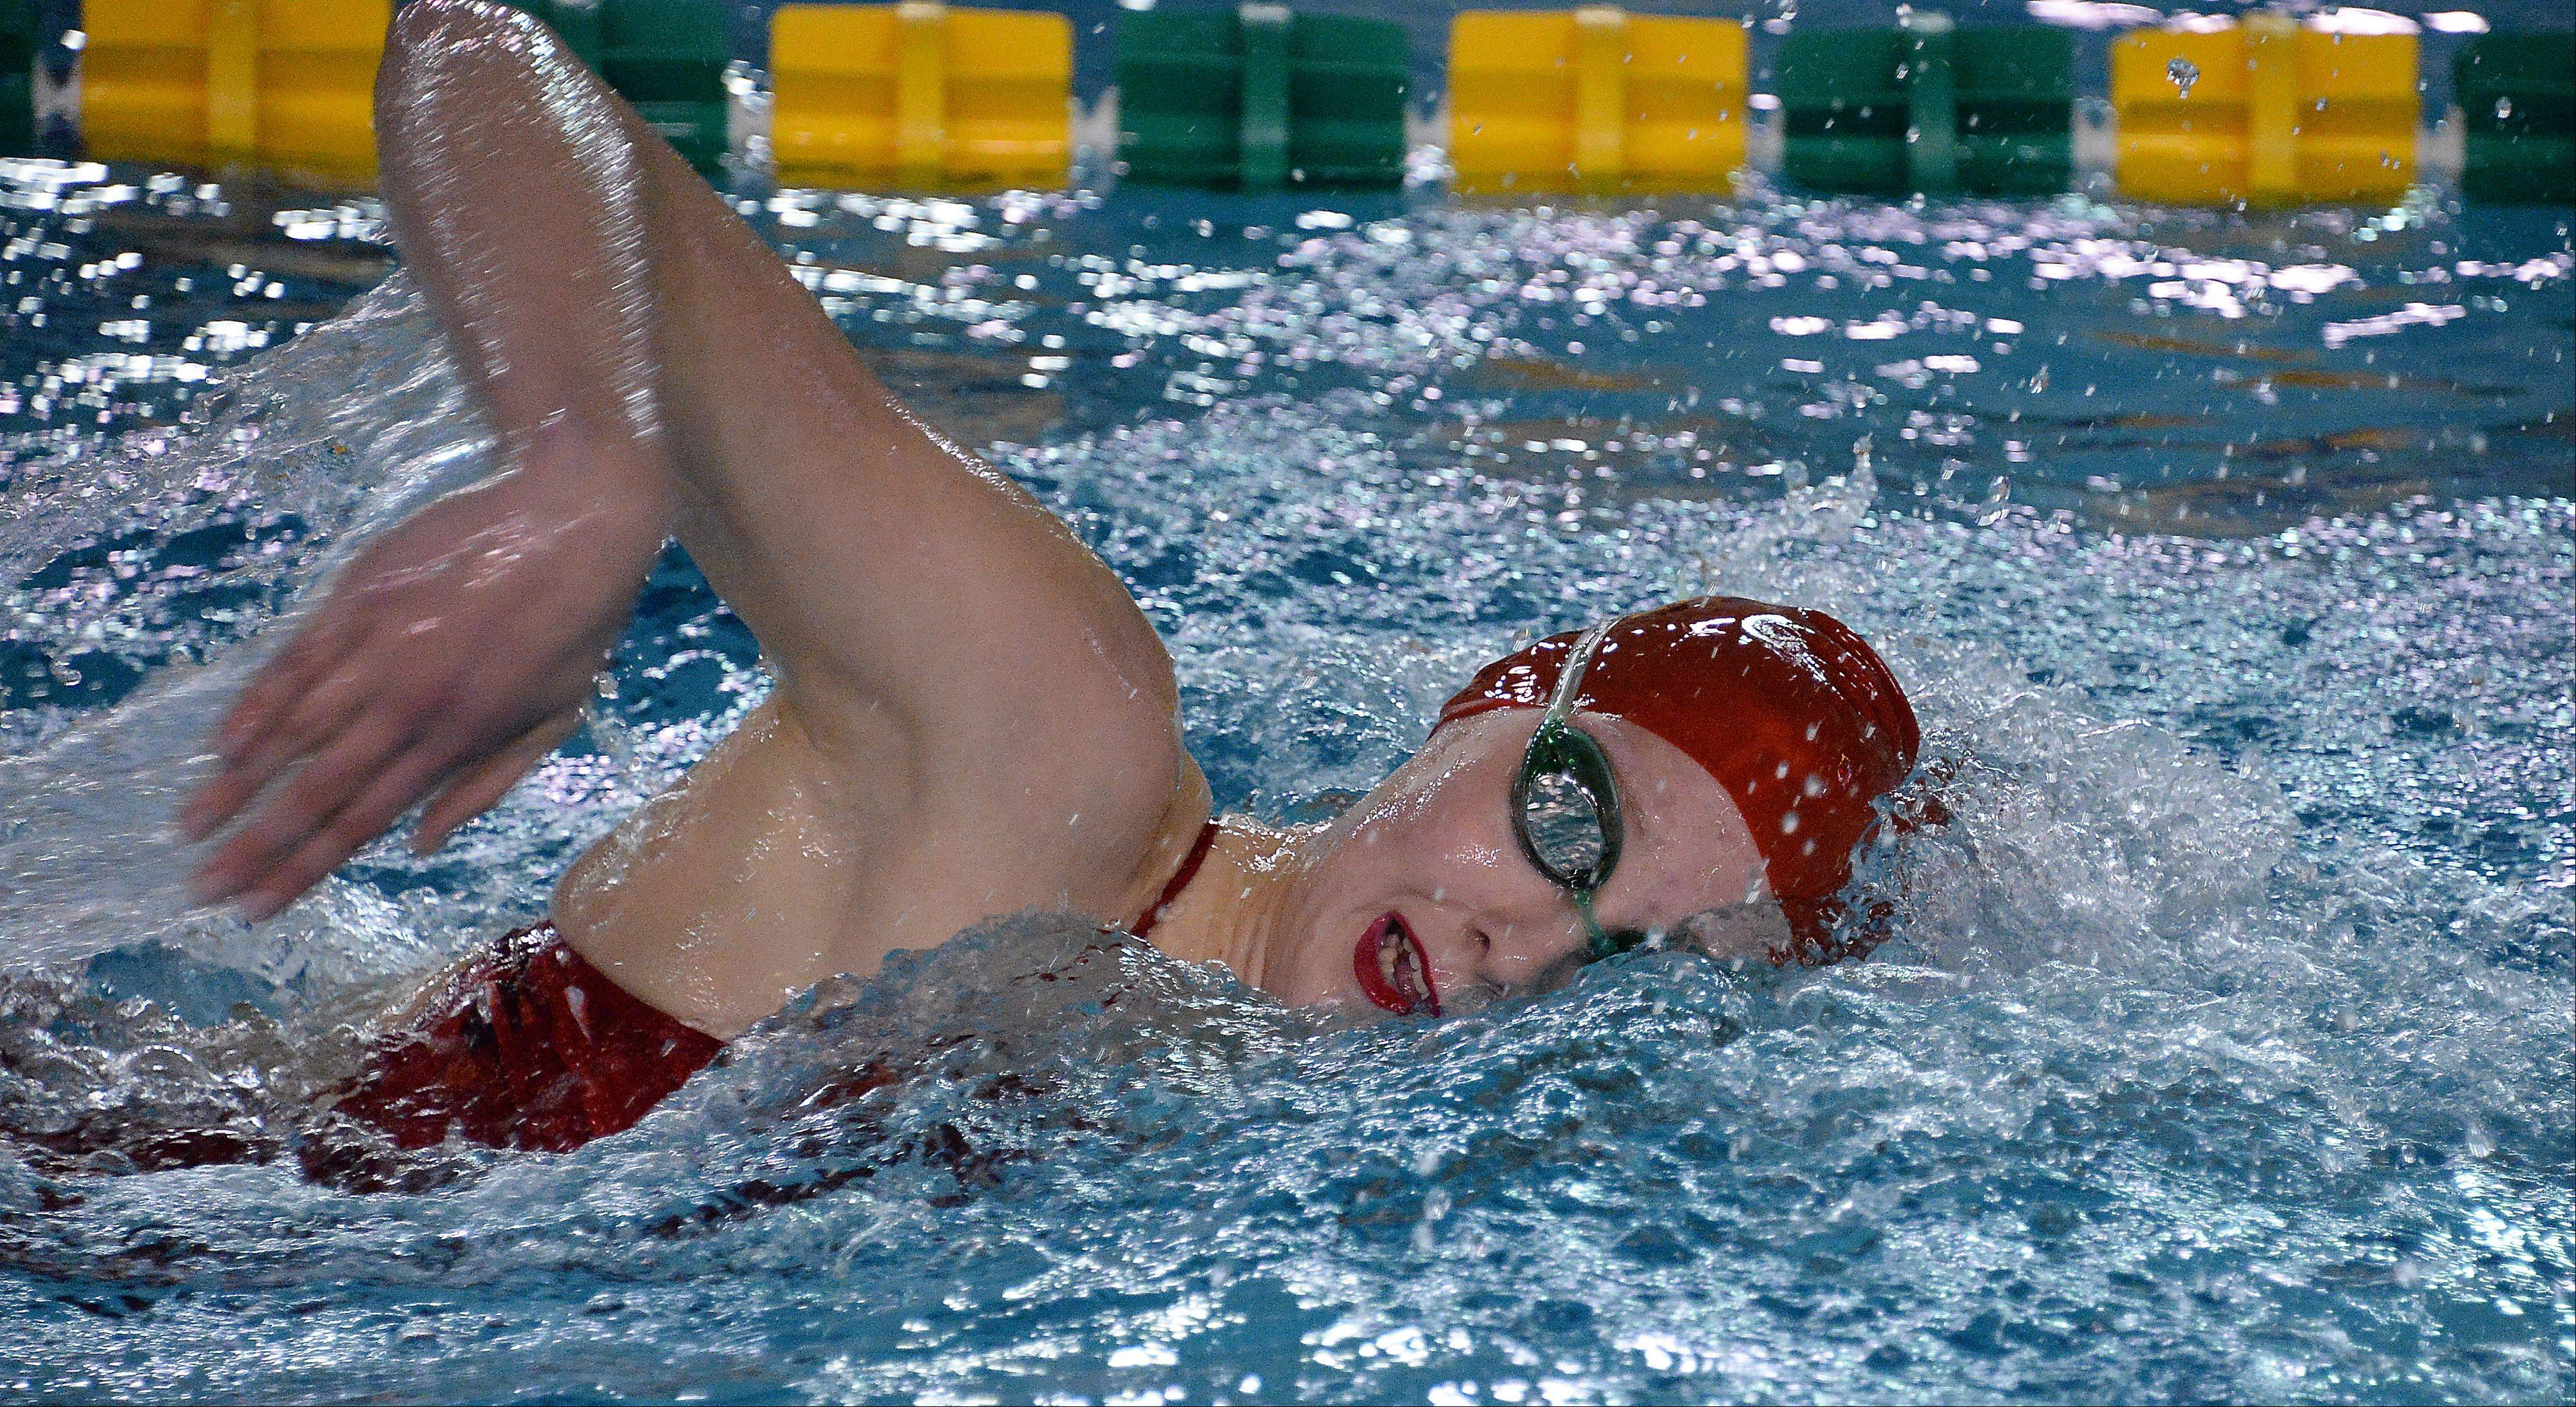 Barrington's Kirsten Jacobsen heads for a win in the 400-meter freestyle at Fremd on Thursday.